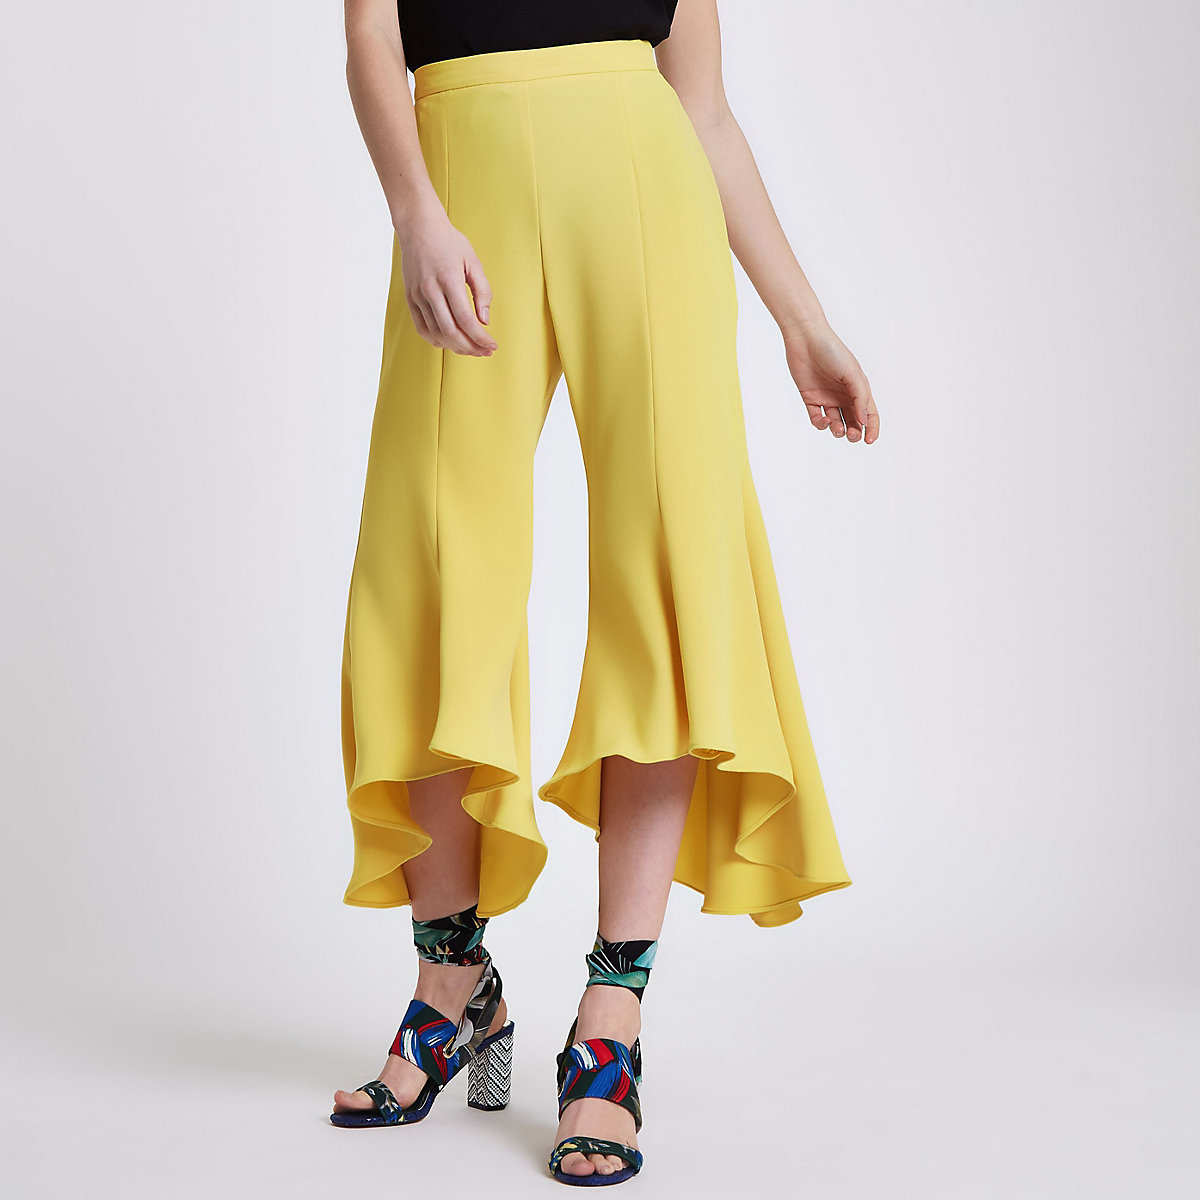 Petite yellow split frill hem pants